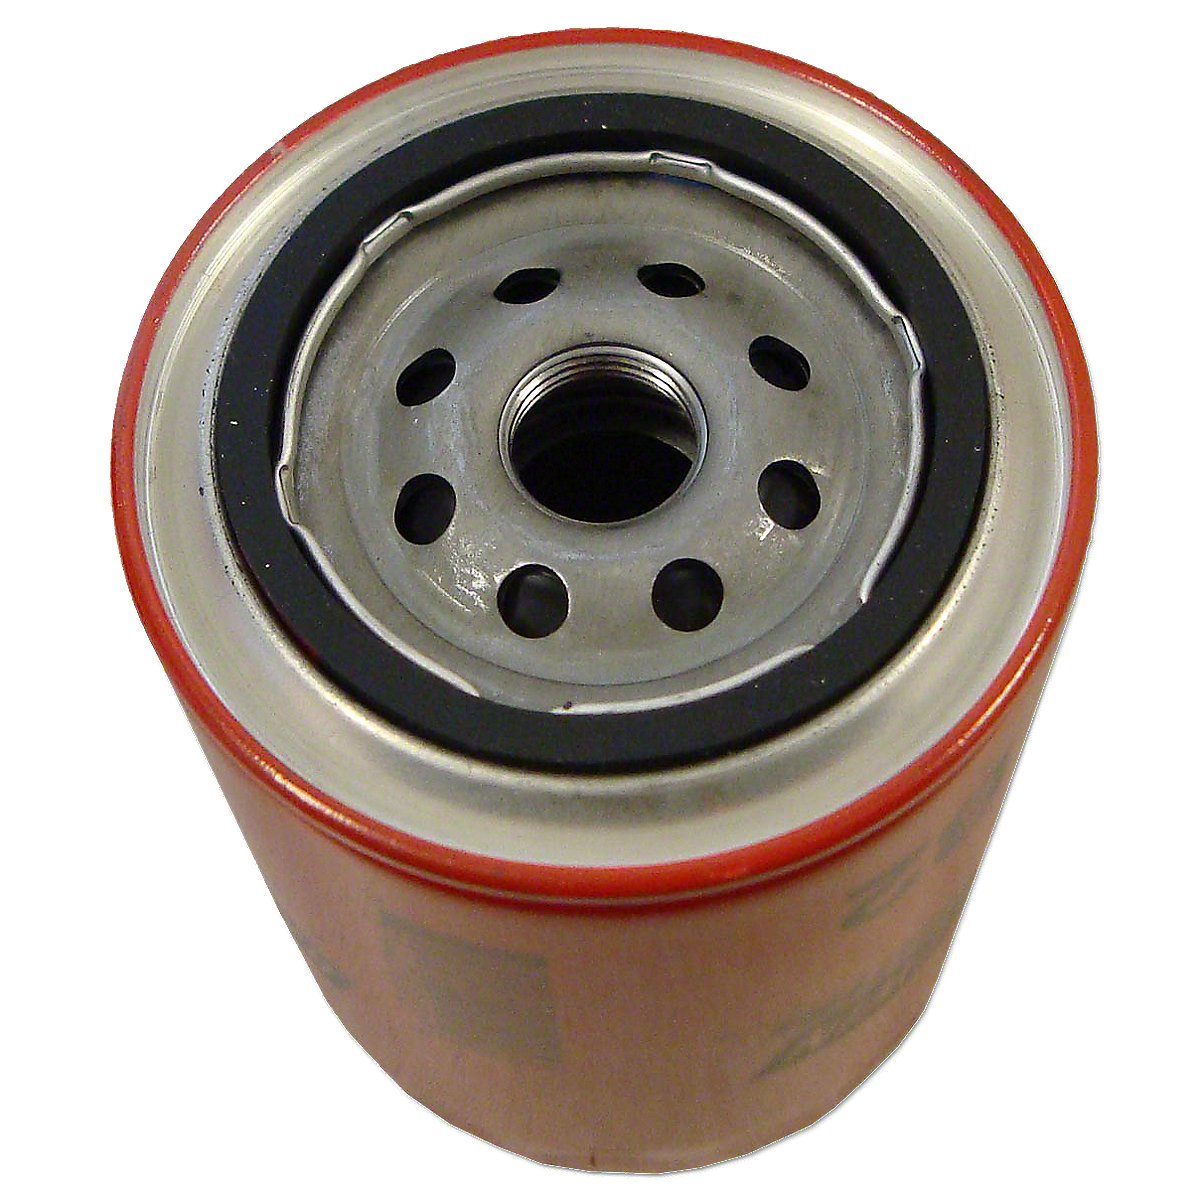 Spin On Oil Filter For Allis Chalmers:D15 Gas & LP, D17 Gas